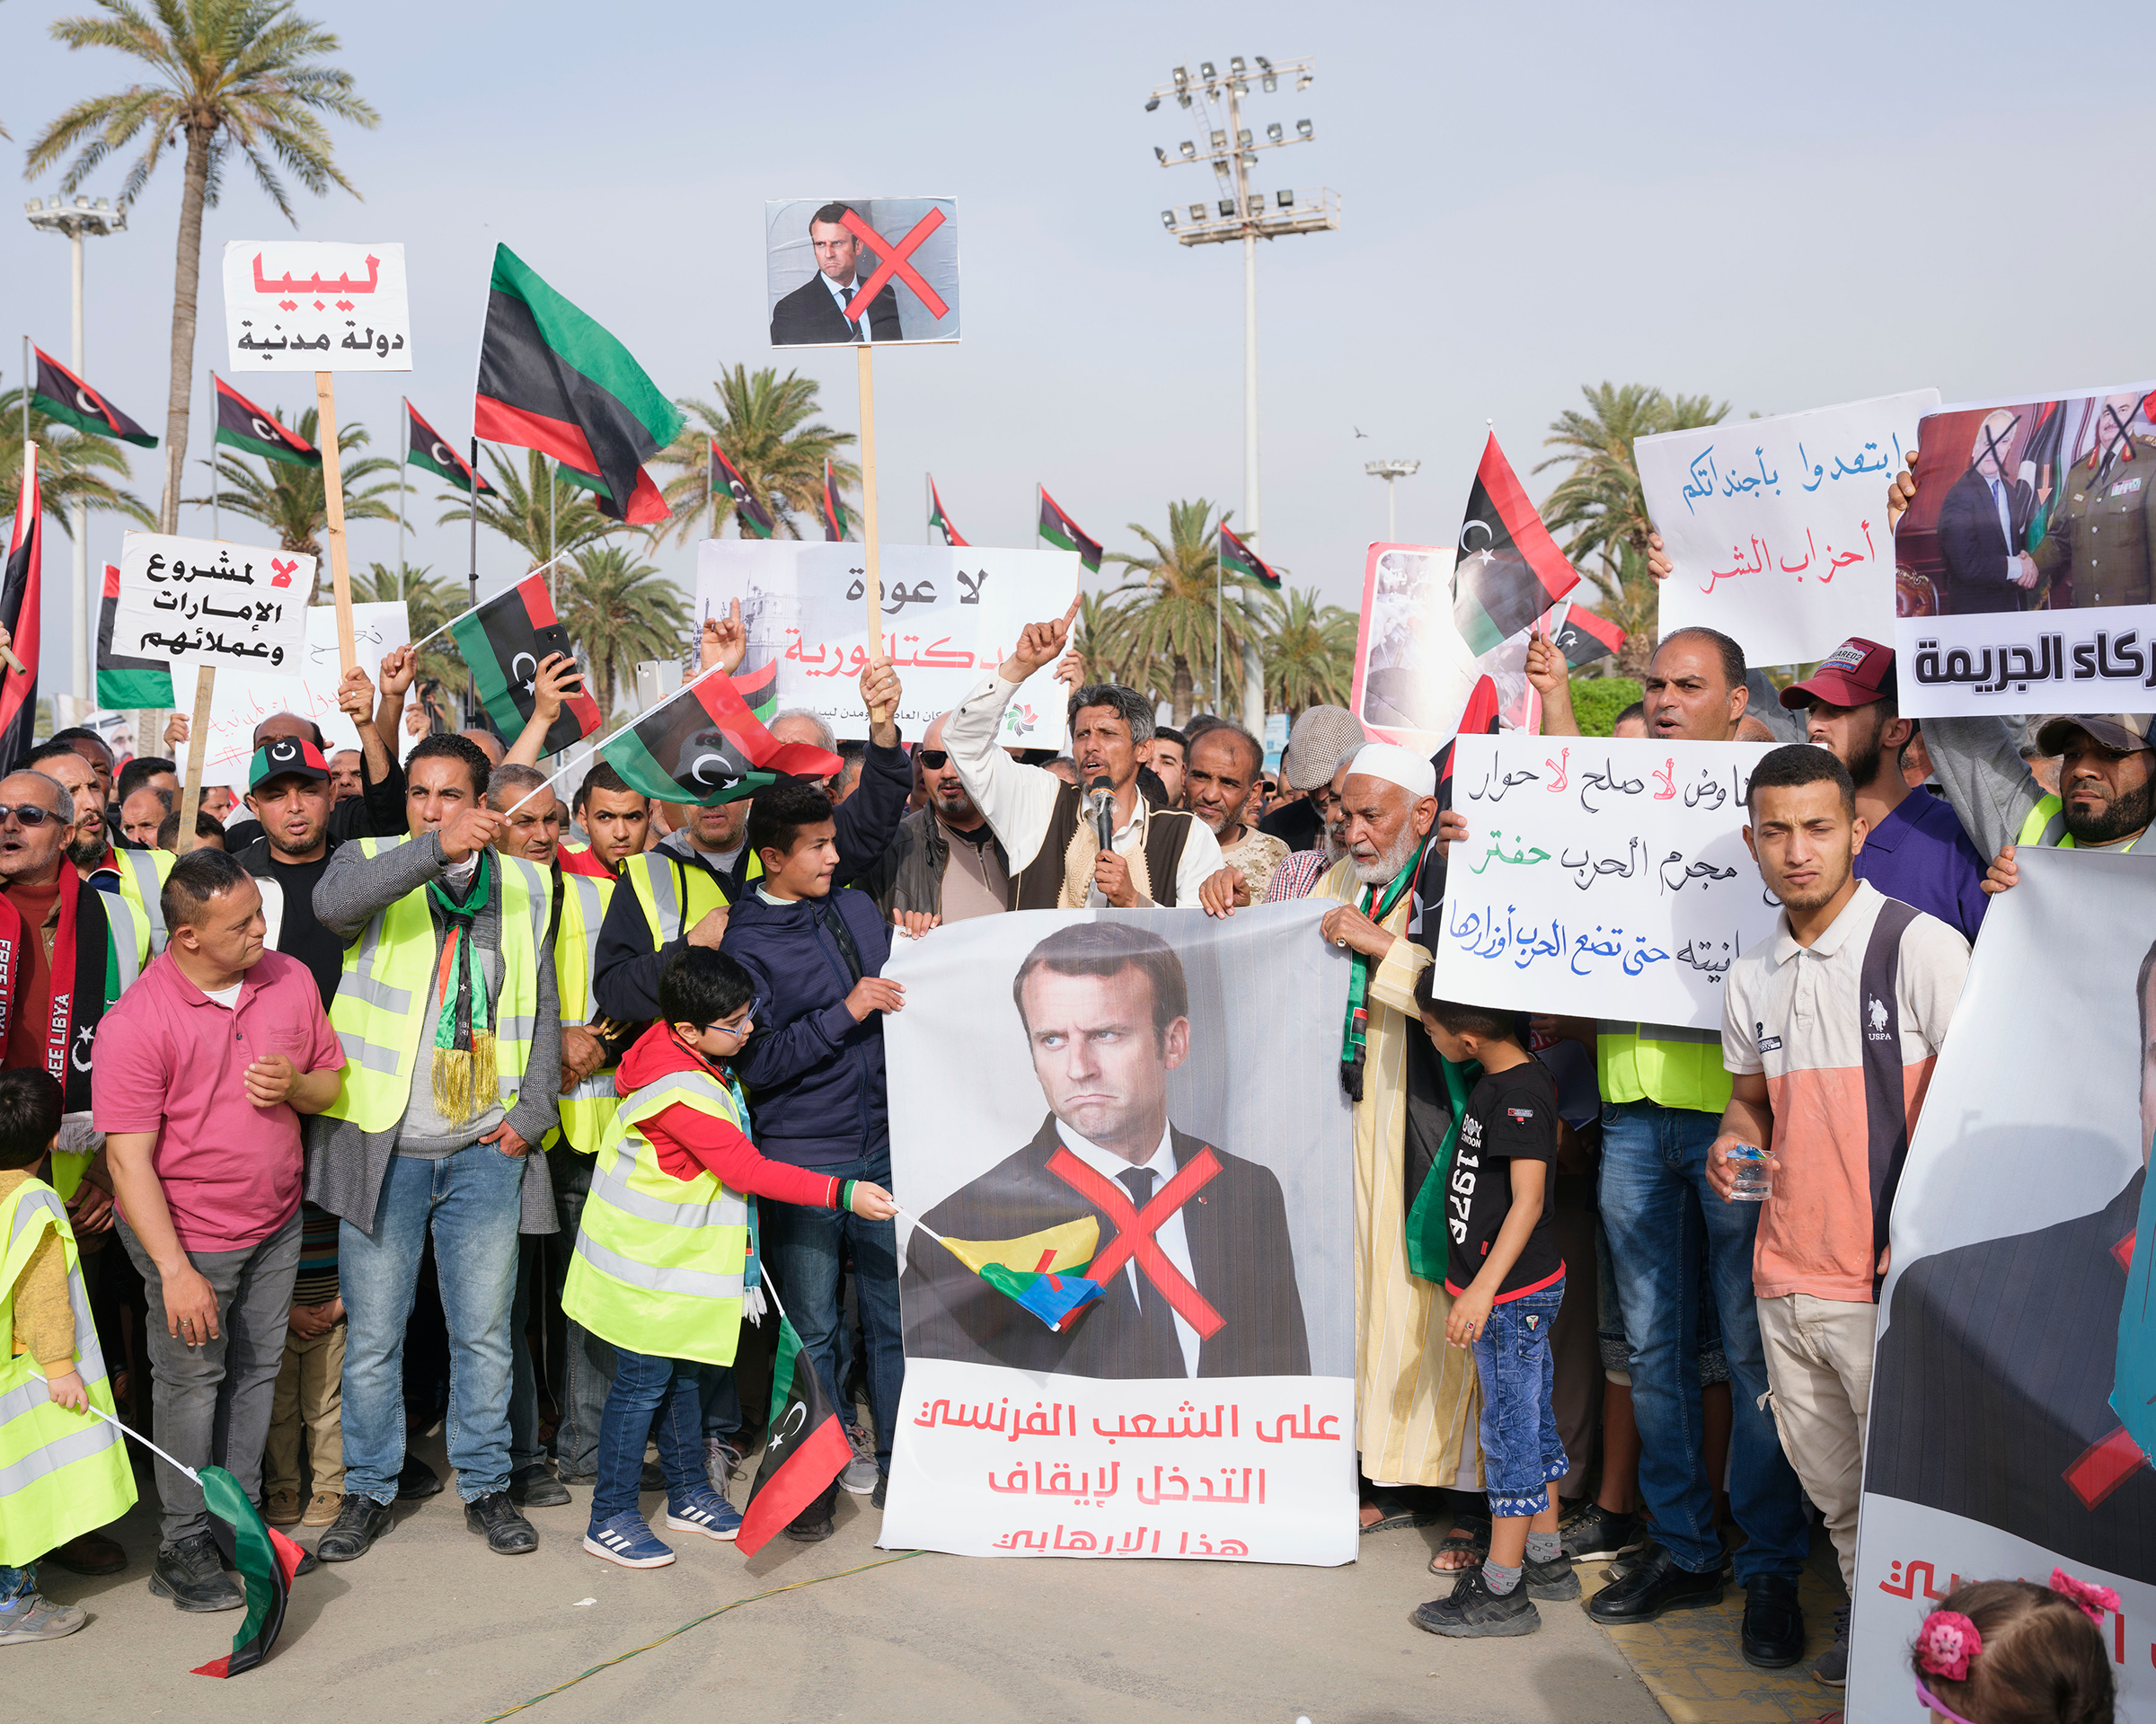 An anti-war demonstration, where protesters accused France of supporting Haftar, in Tripoli's Martyrs' Square in April.